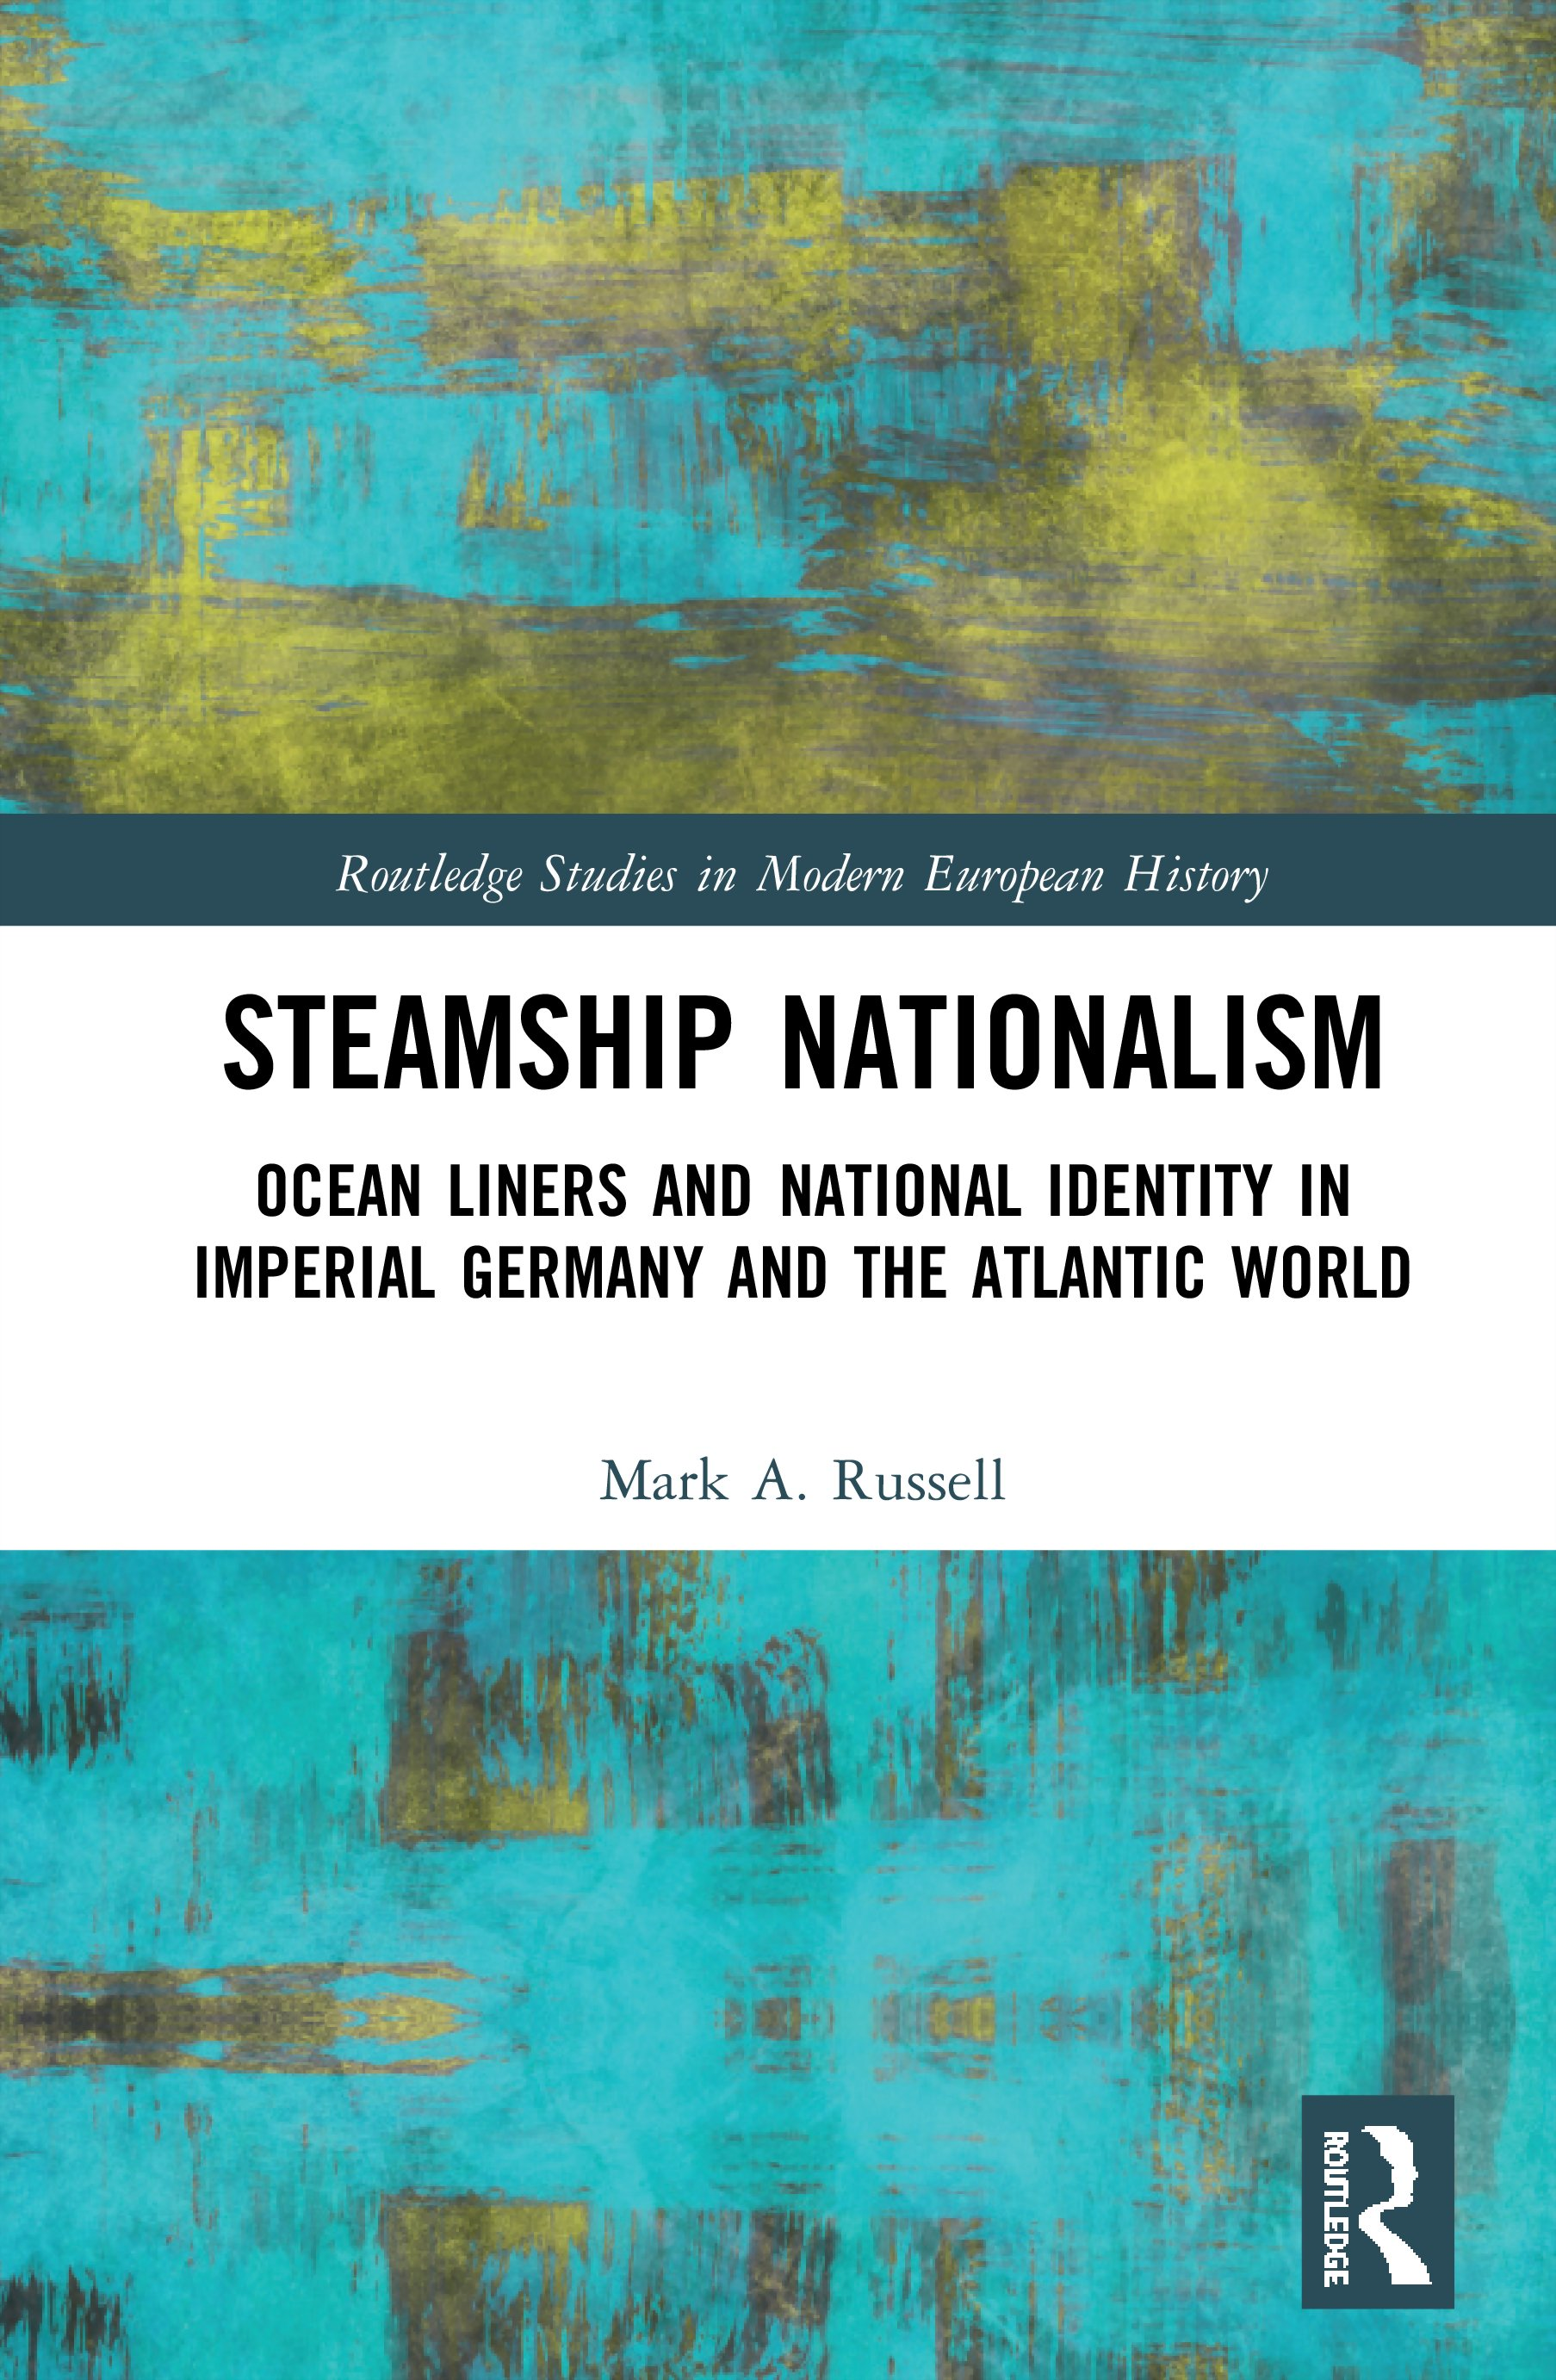 Steamship Nationalism: Ocean Liners and National Identity in Imperial Germany and the Atlantic World book cover